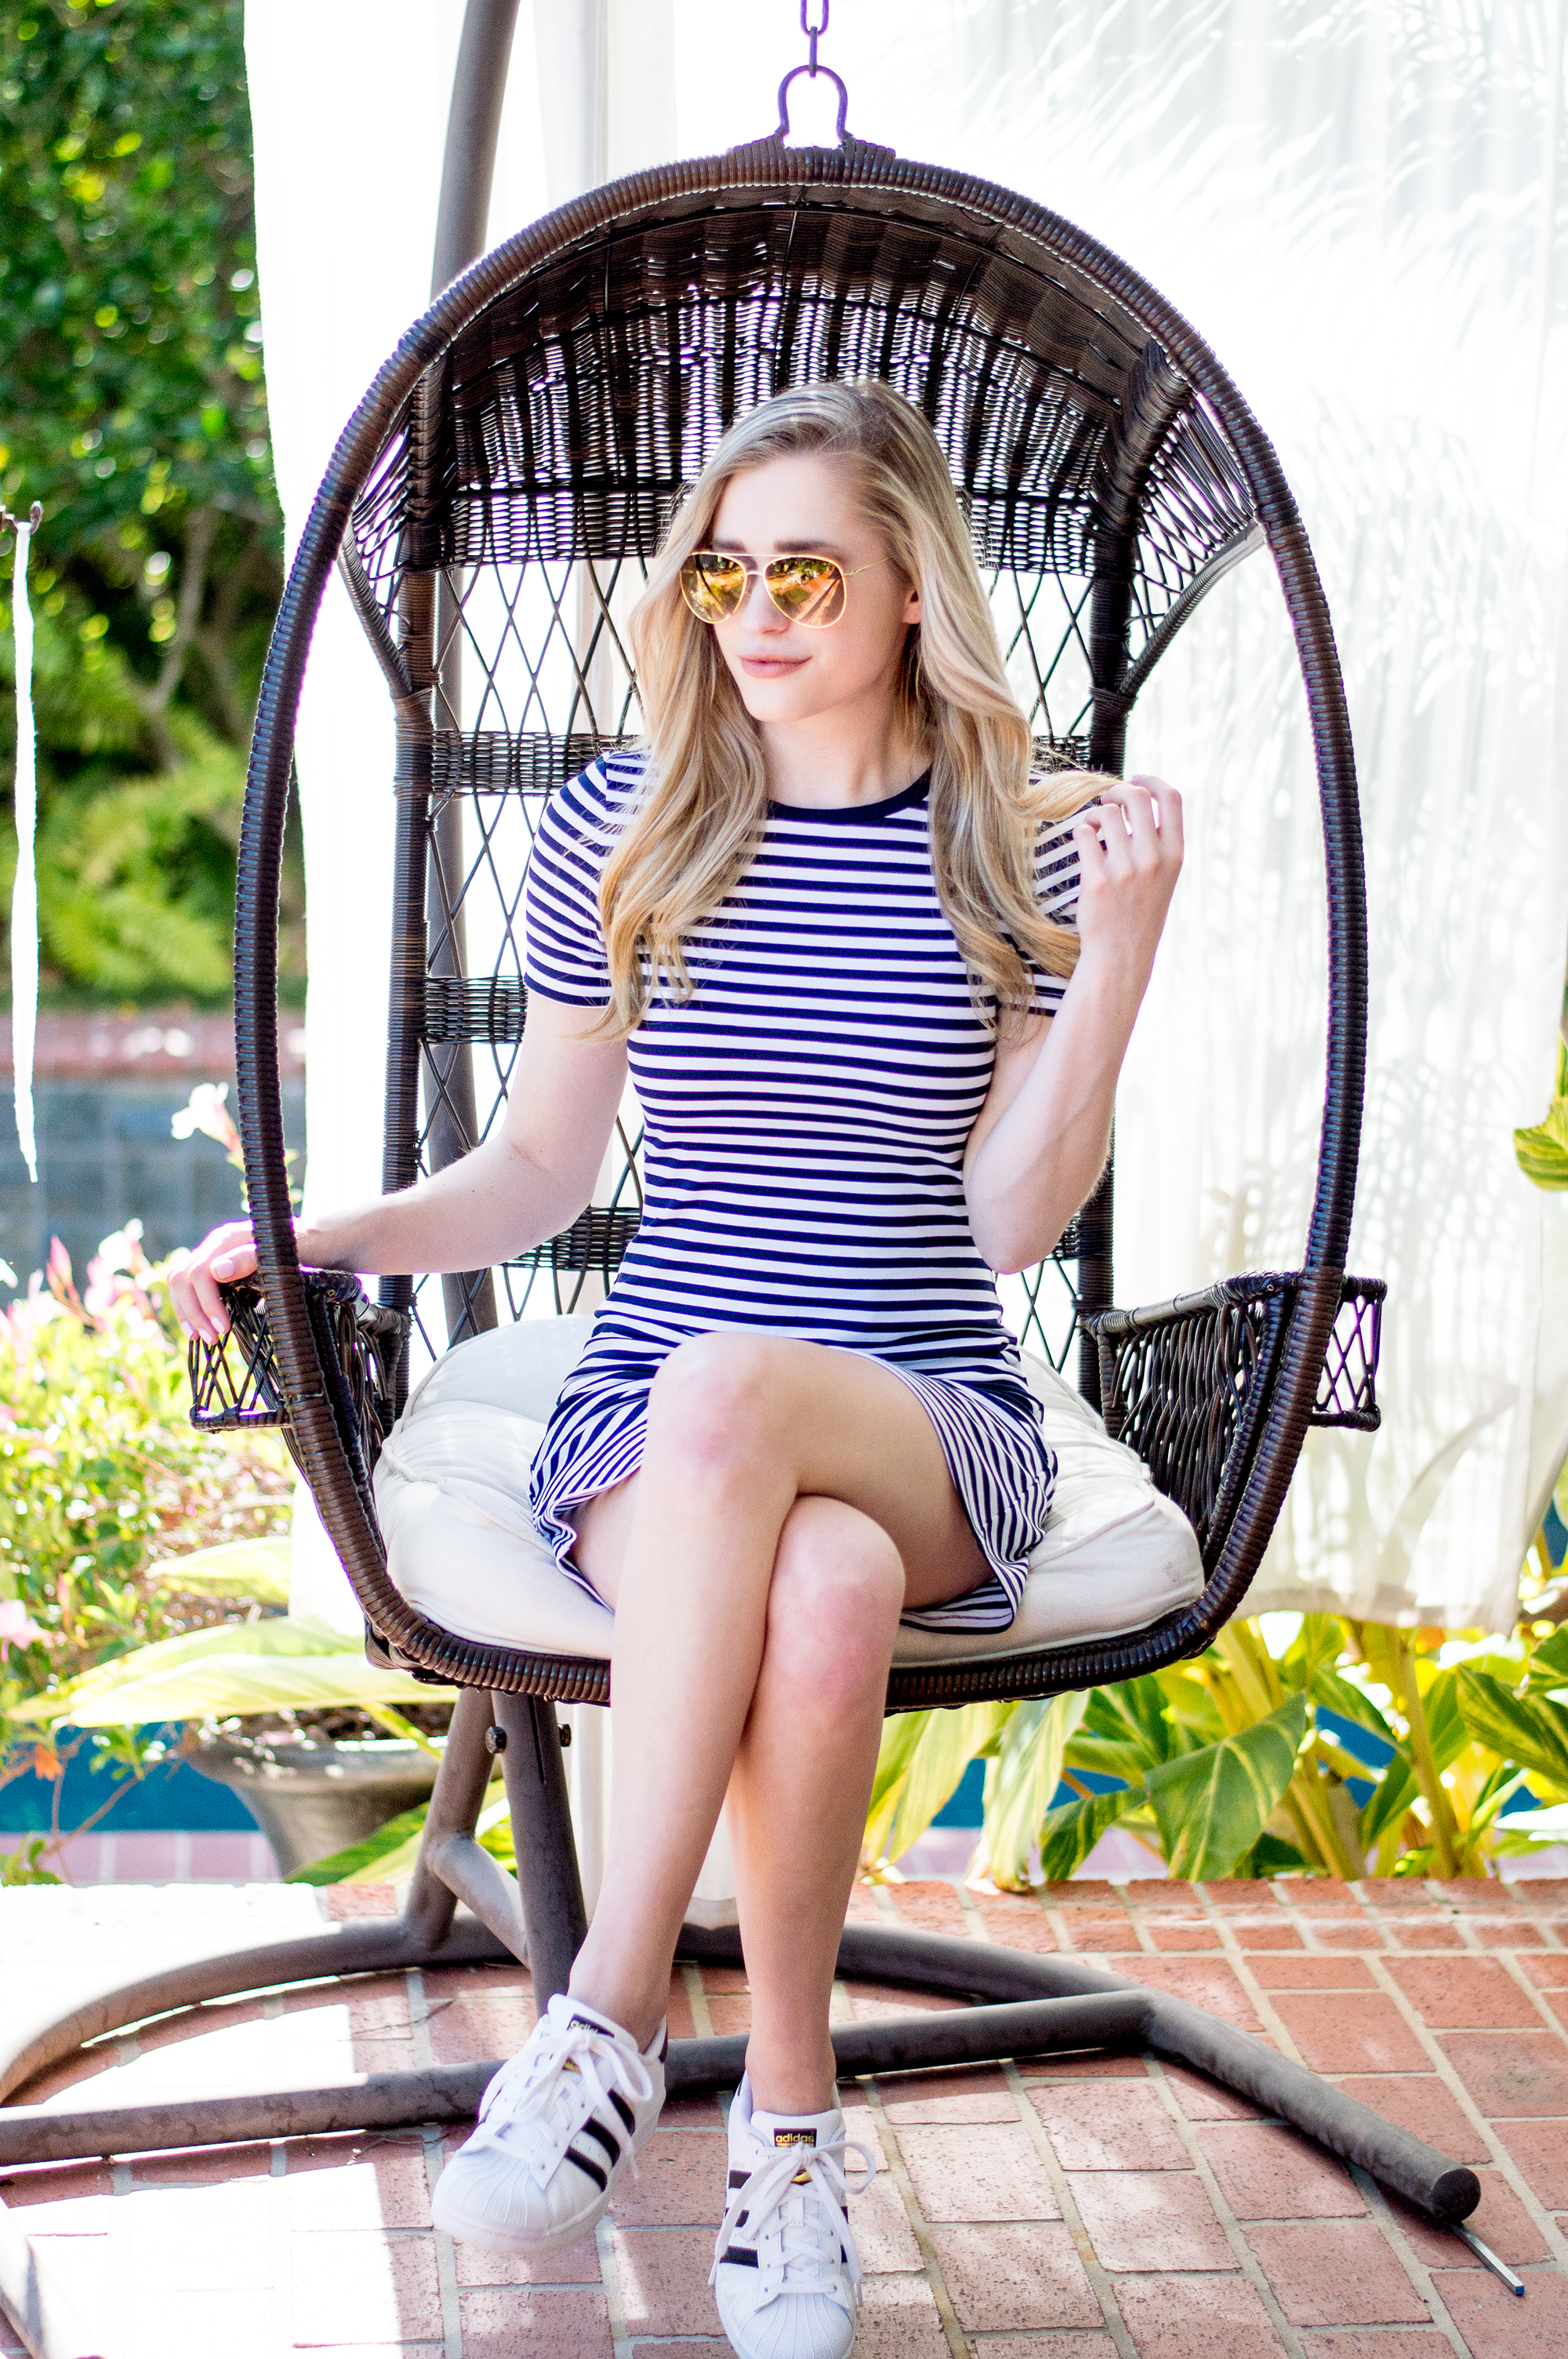 styelled-blog-elle-elisabeth-jane-hudson-stripes-striped-dress-adidas-superstar-efitz-bluetooth-headphones-apple-macbook-gold-burberry-blogger-09